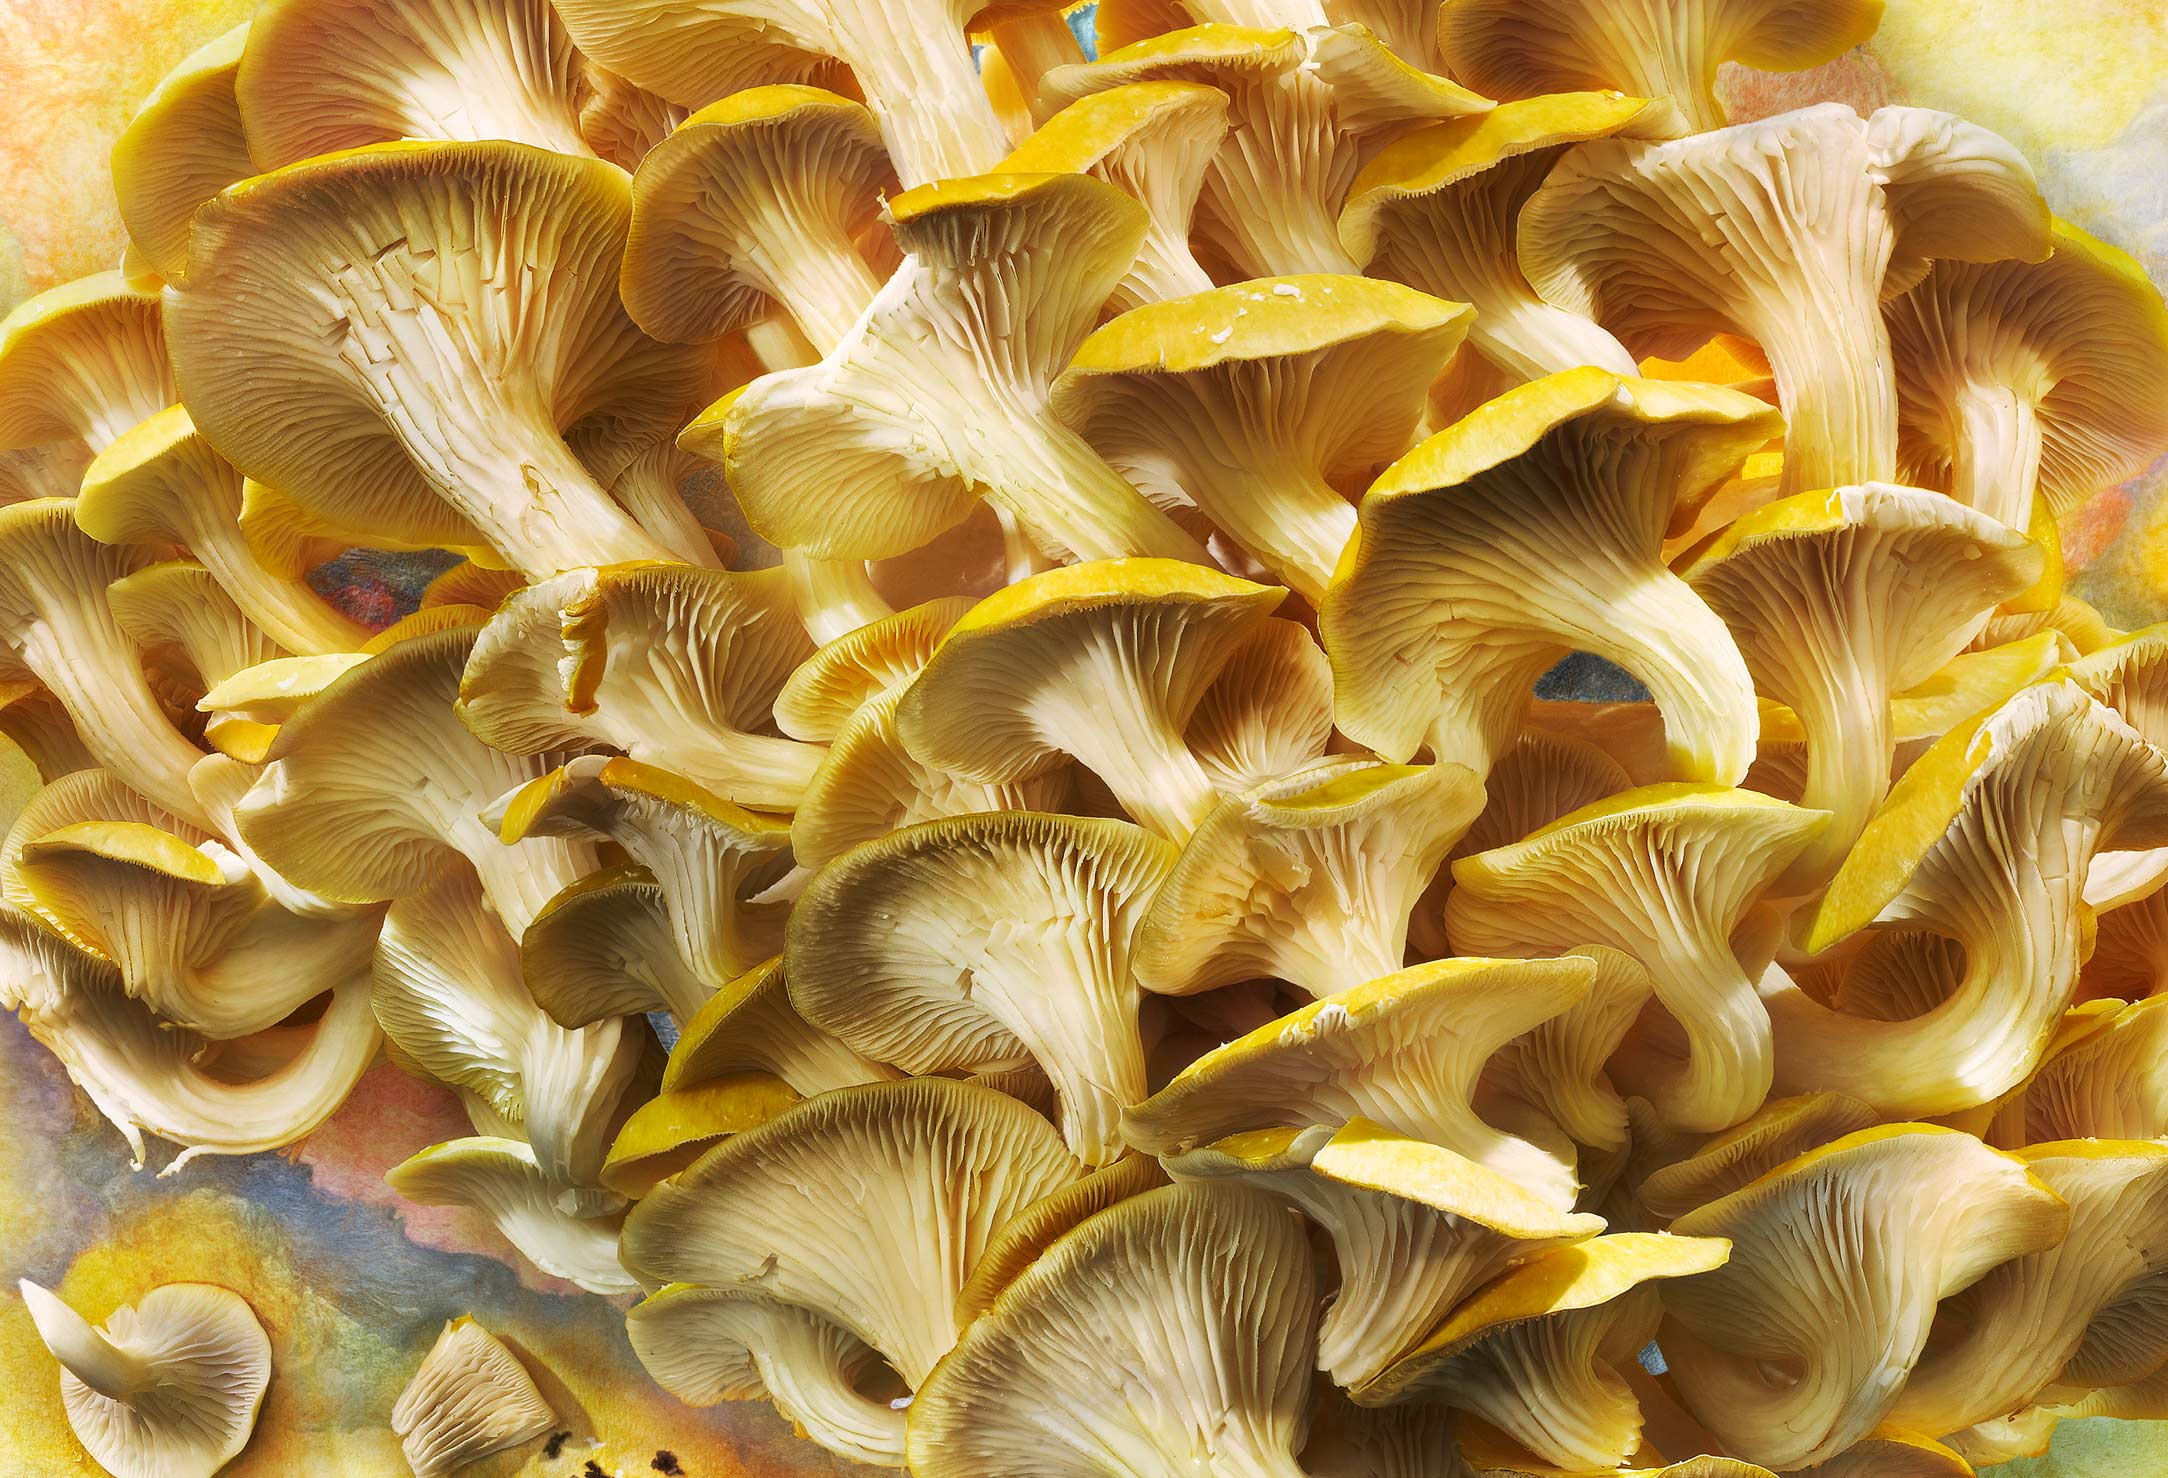 Golden-Elm-Mushrooms